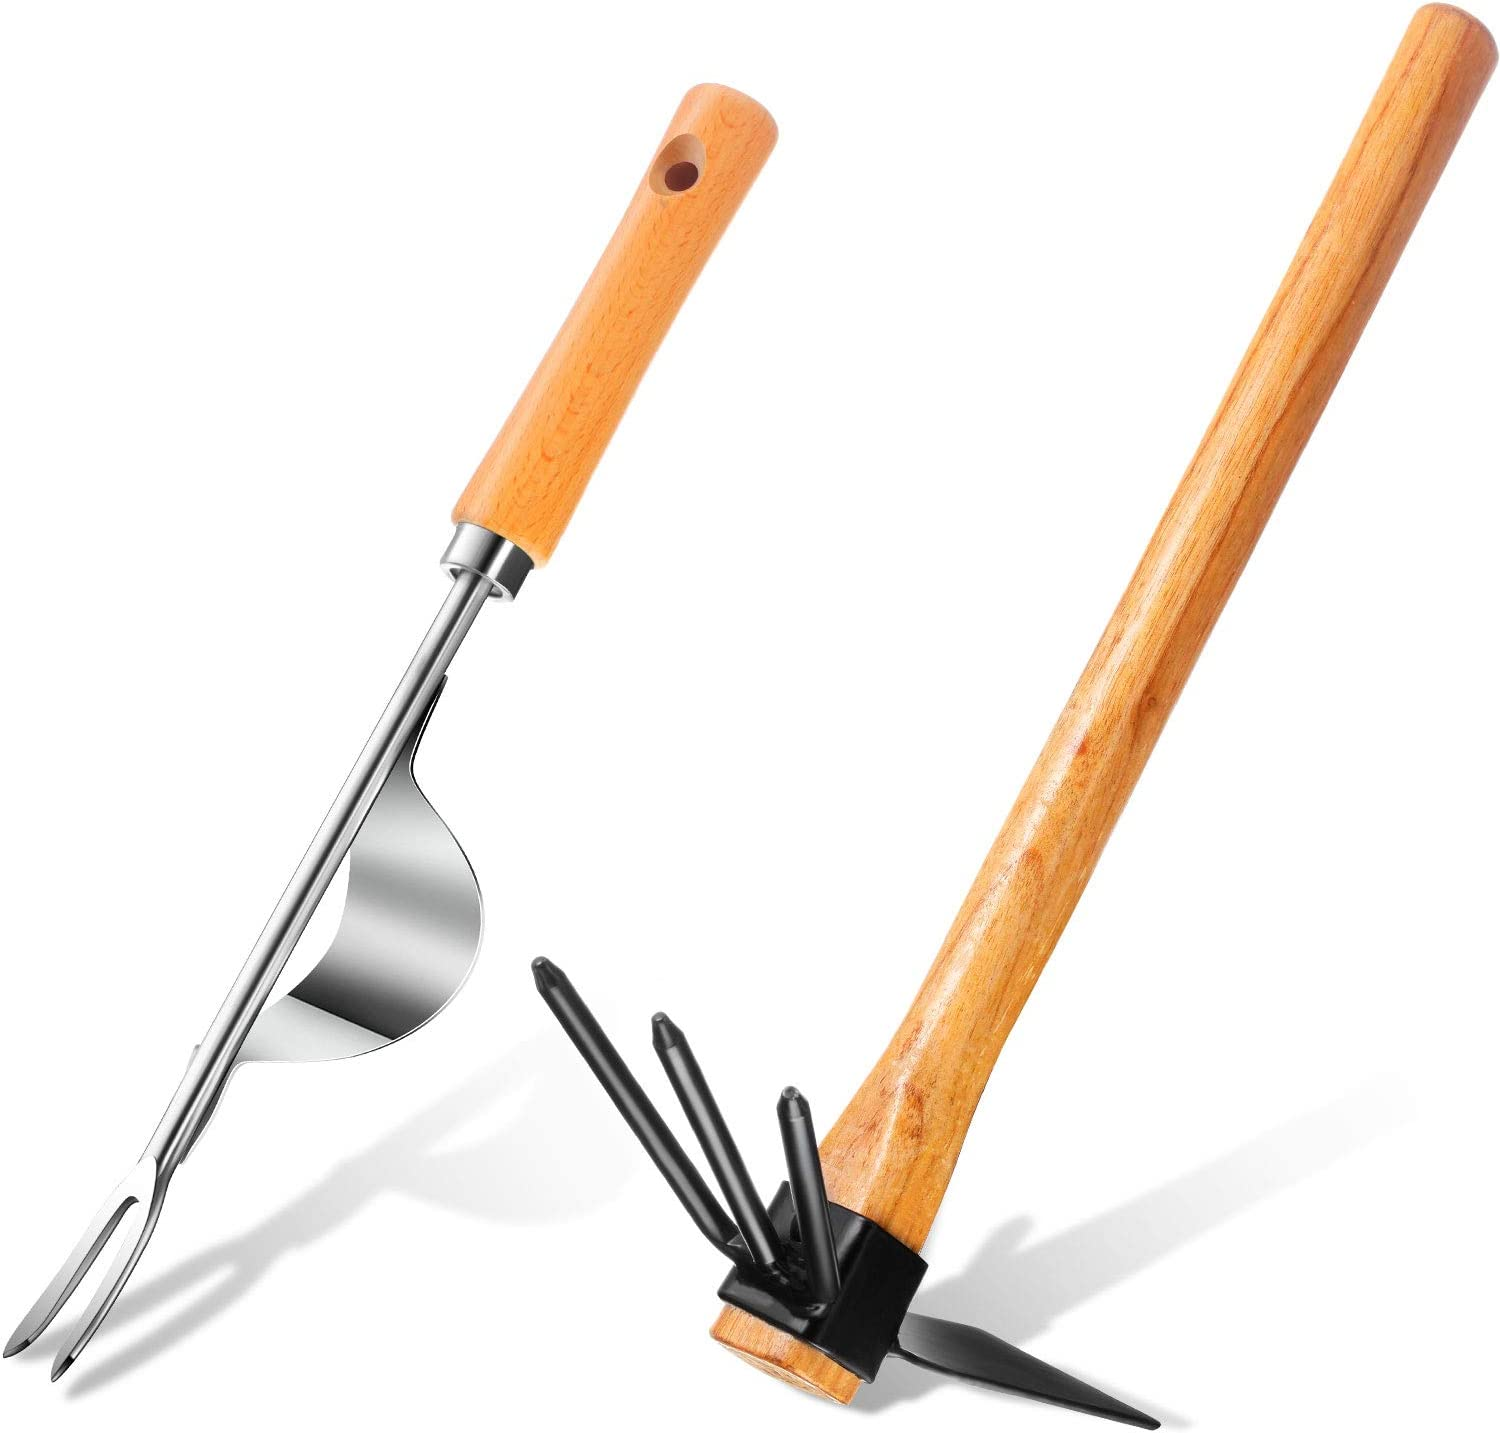 ZaRoing 2-in-1Hoe and Cultivator Hand Tiller Rubber Grip Handle/&Anti-Rust Planting Weeding Gardening Shovel Plant for Gardening Digging Heavy Duty Lawn Garden Tools for Loosening Soil